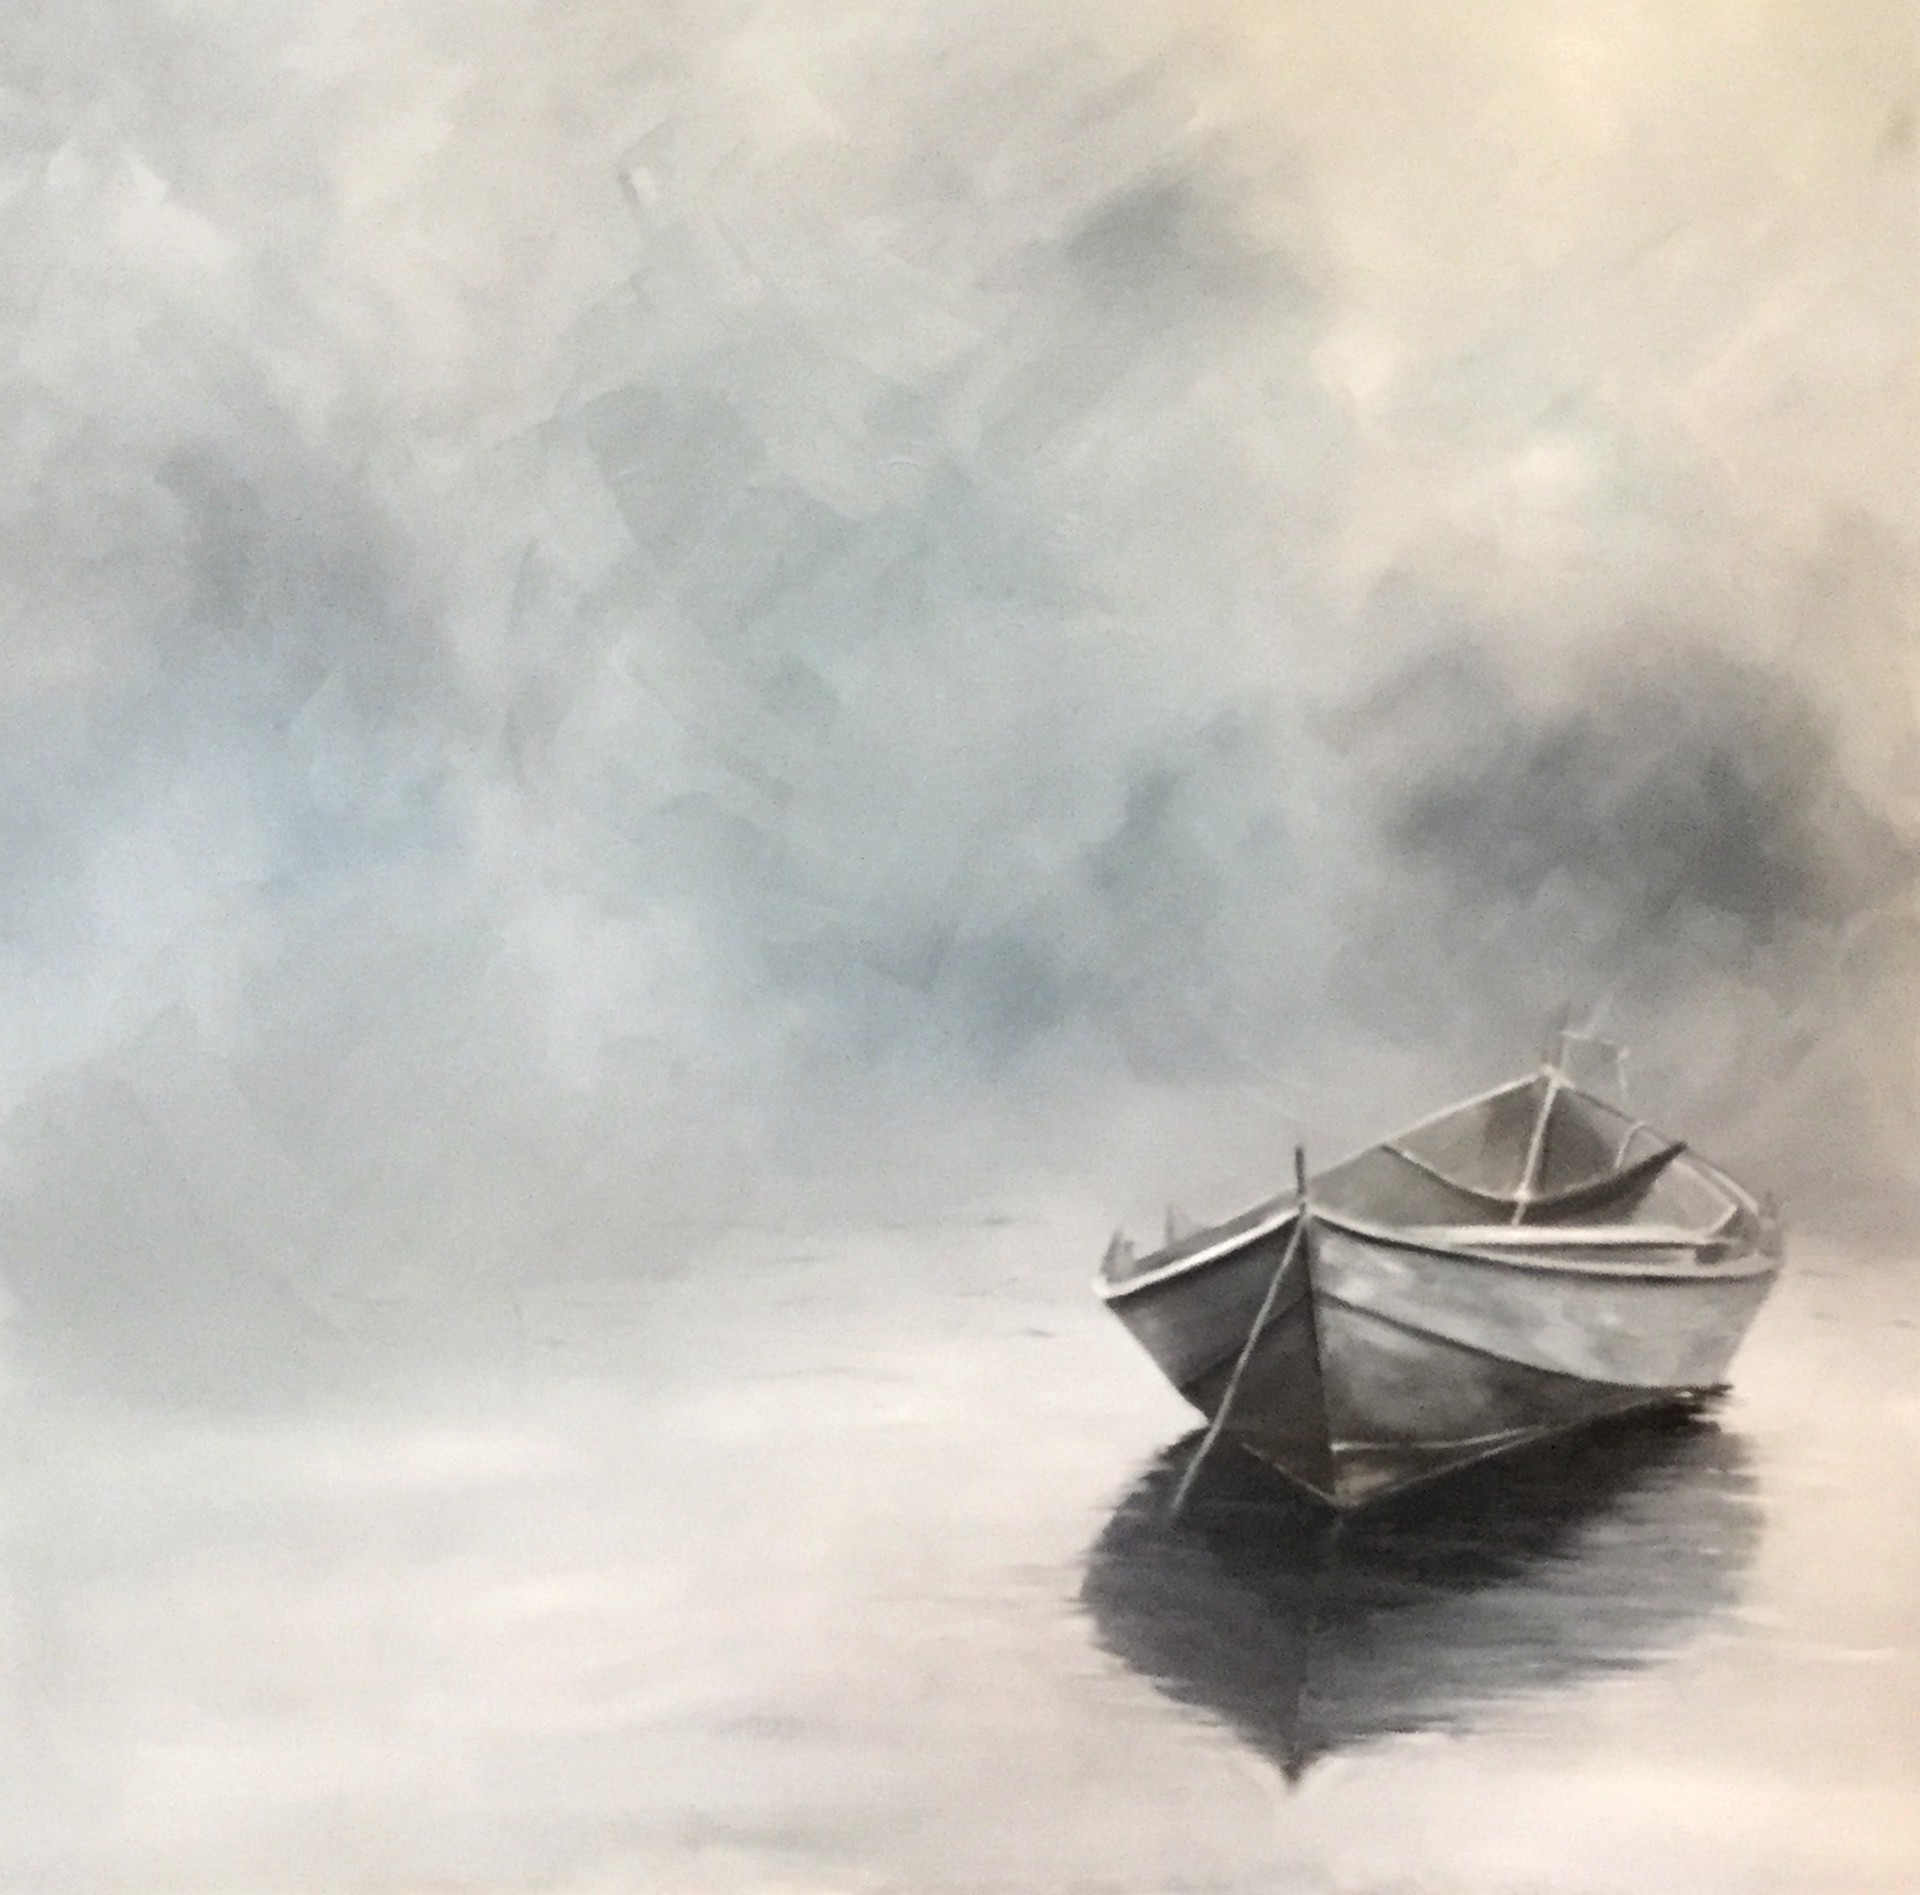 Peace in Solitude by Sharon Brown